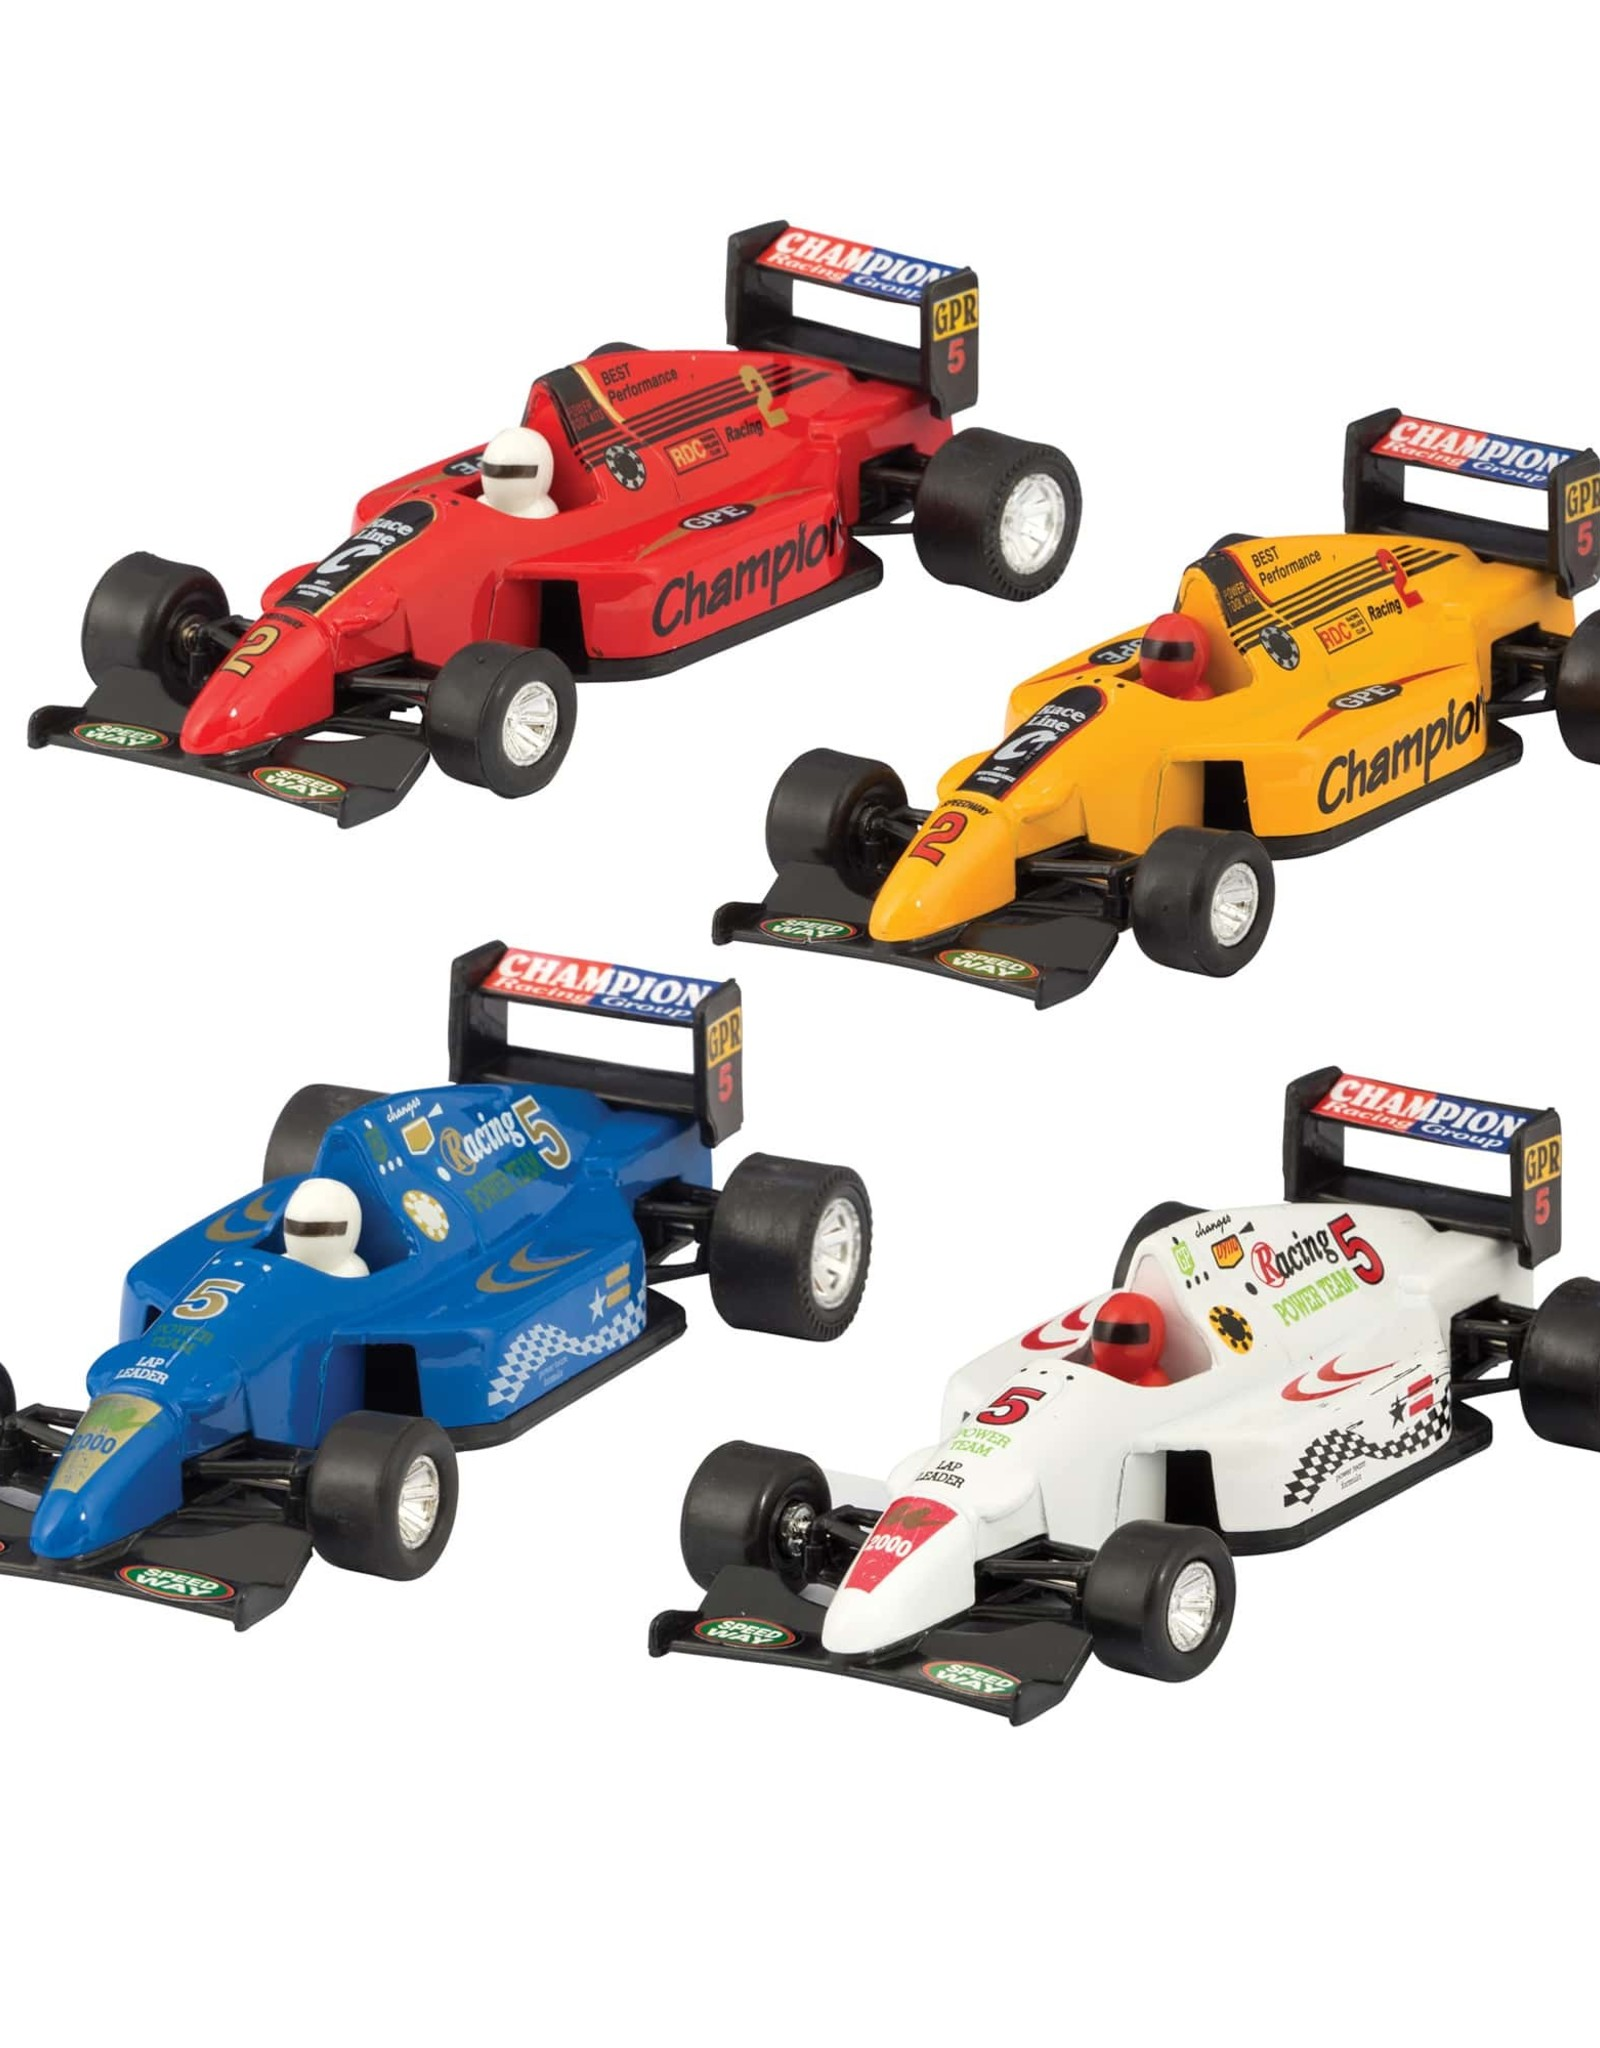 Schylling Die Cast Formula One Race Cars